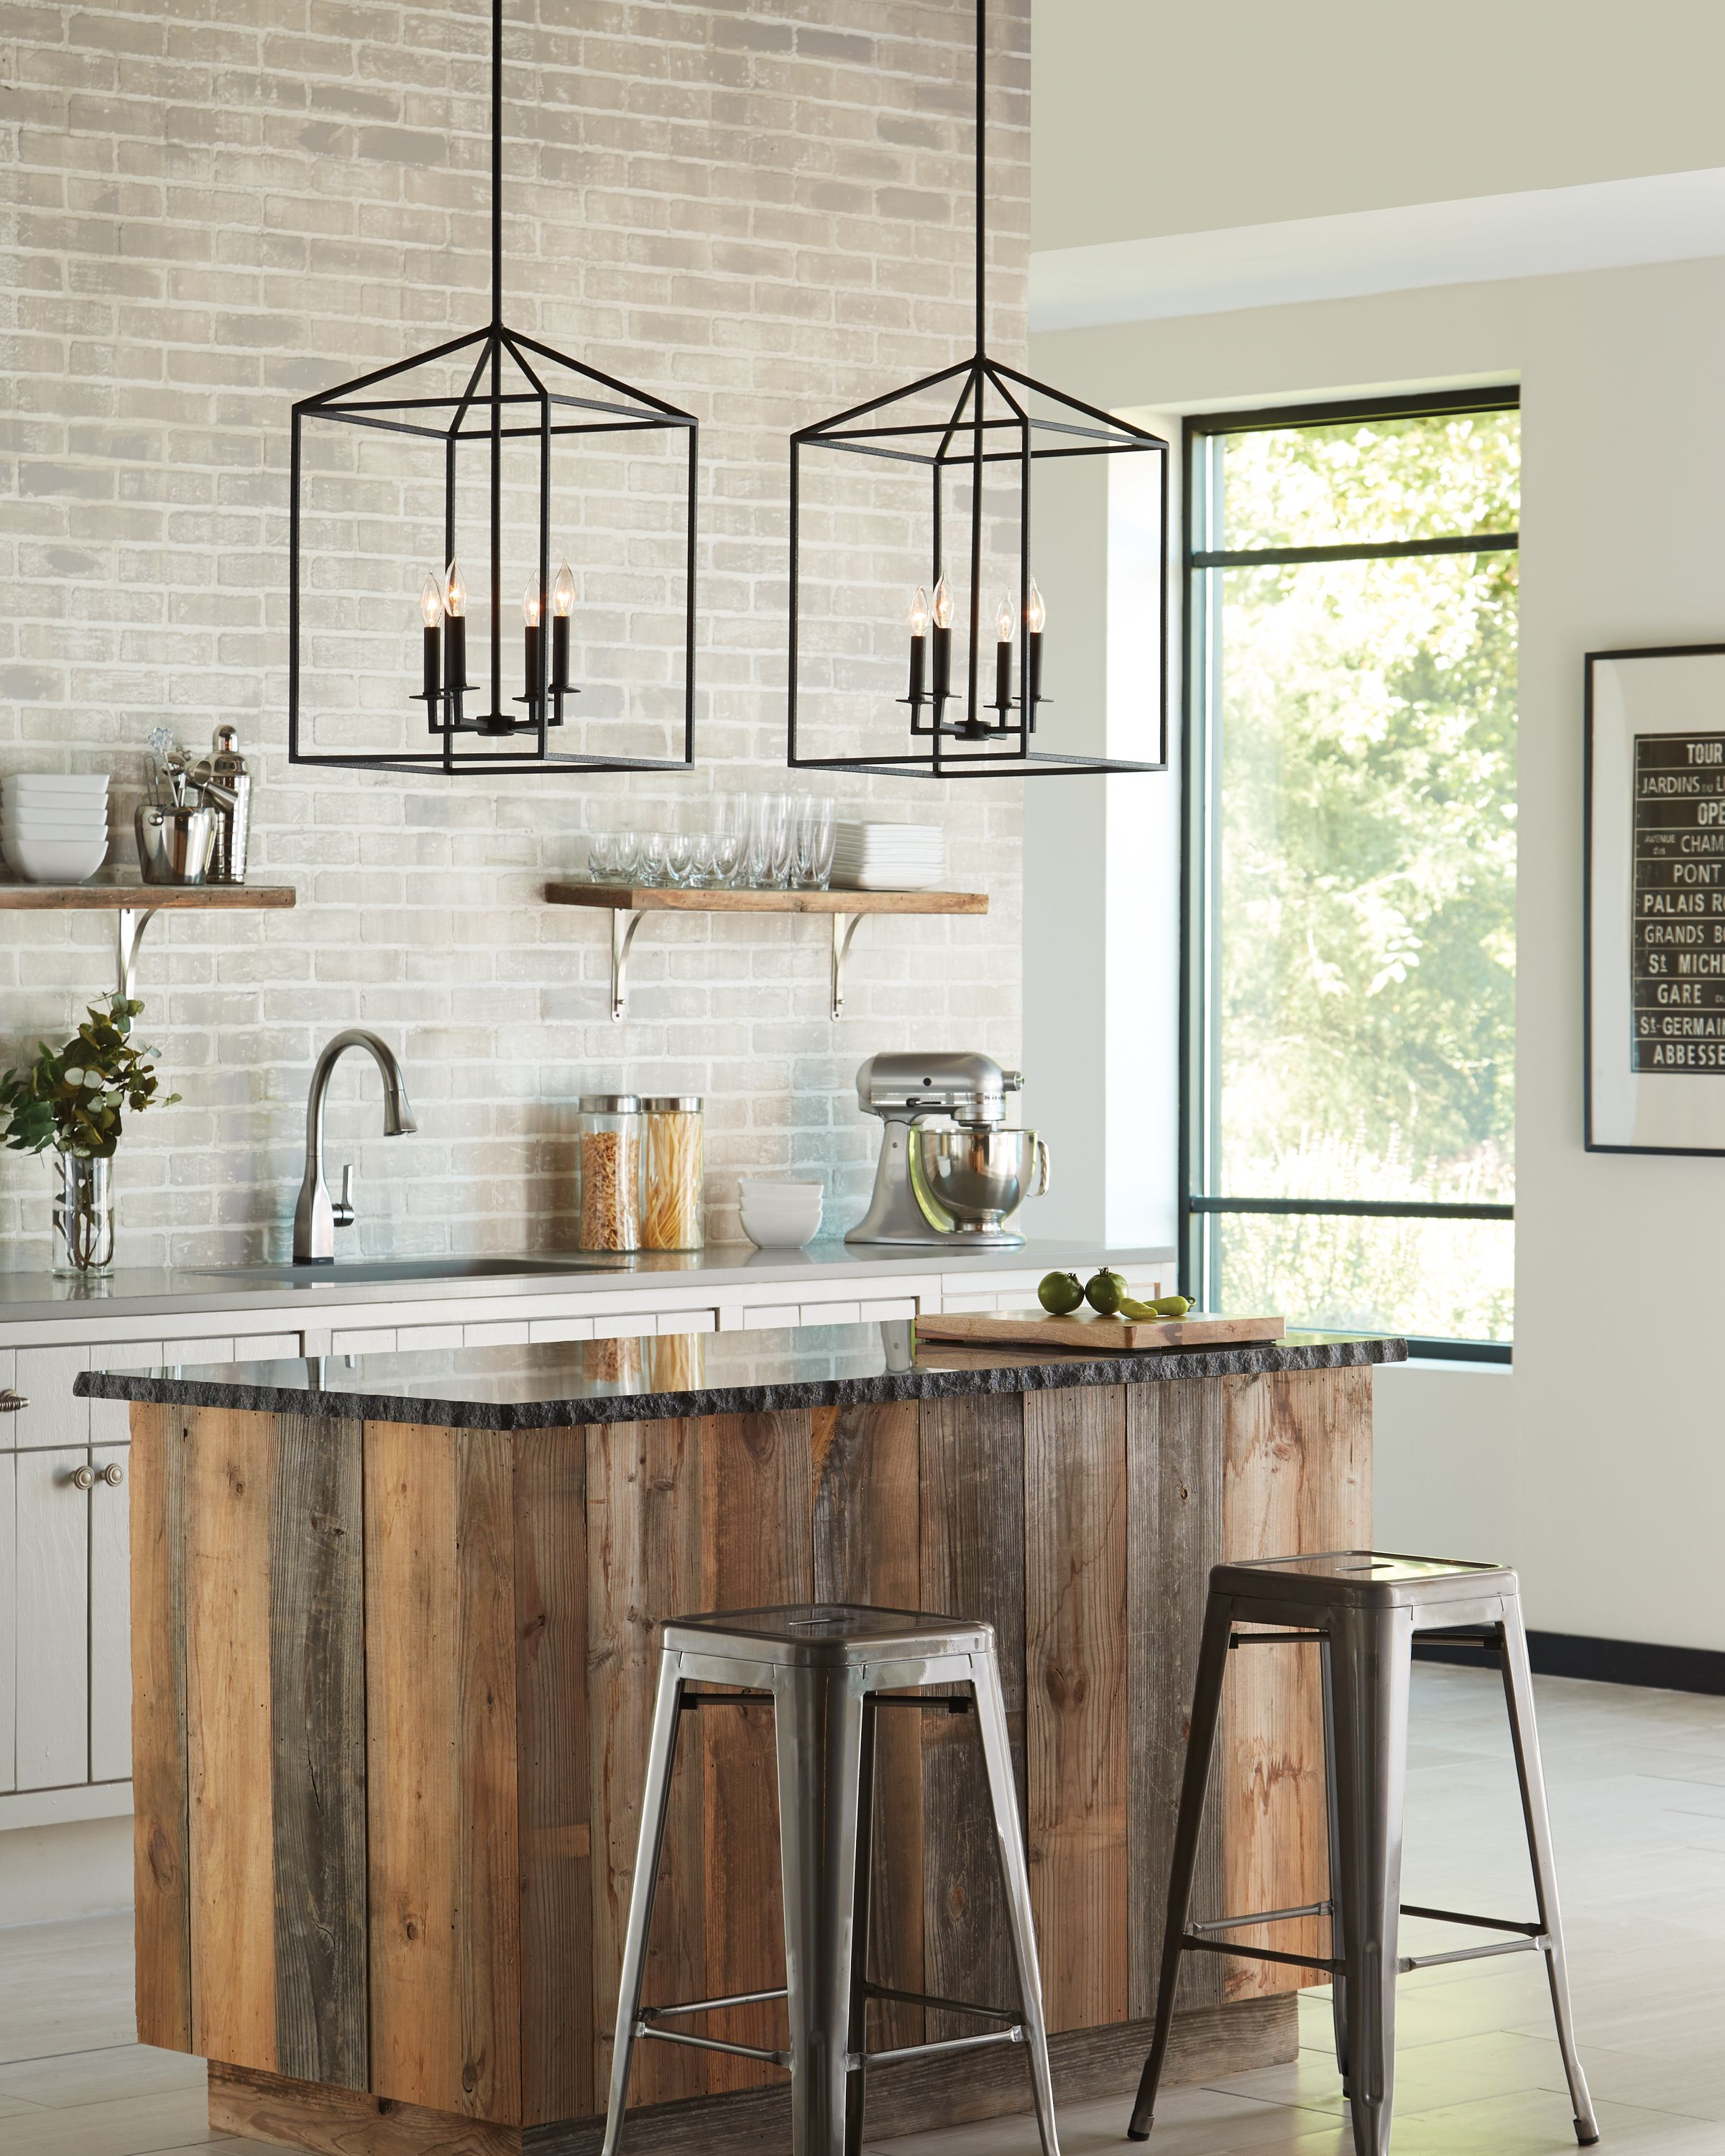 Transitional Kitchen Lighting The Transitional Perryton Pendant Light Collection By Sea Gull